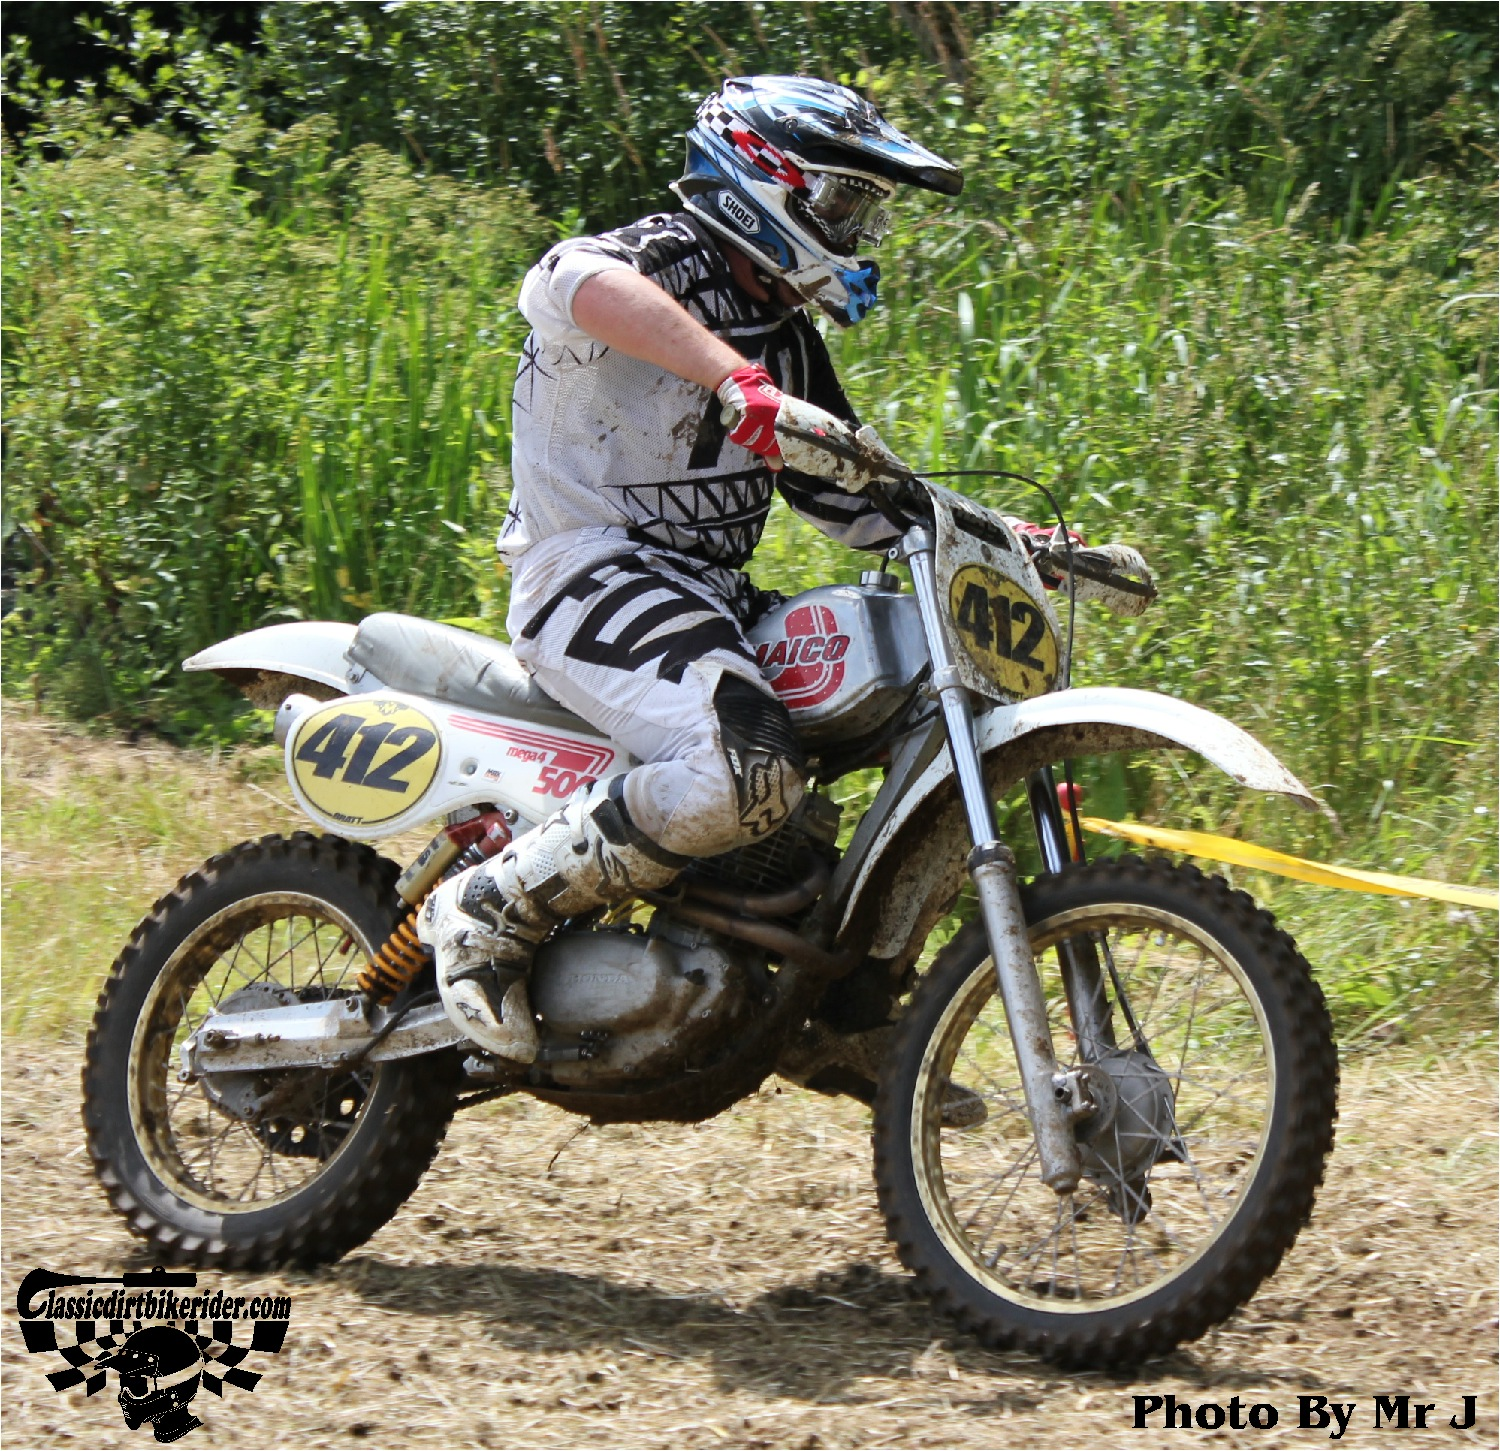 king of the castle 2015 photos Farleigh Castle twinshock motocross classicdirtbikerider.com 41